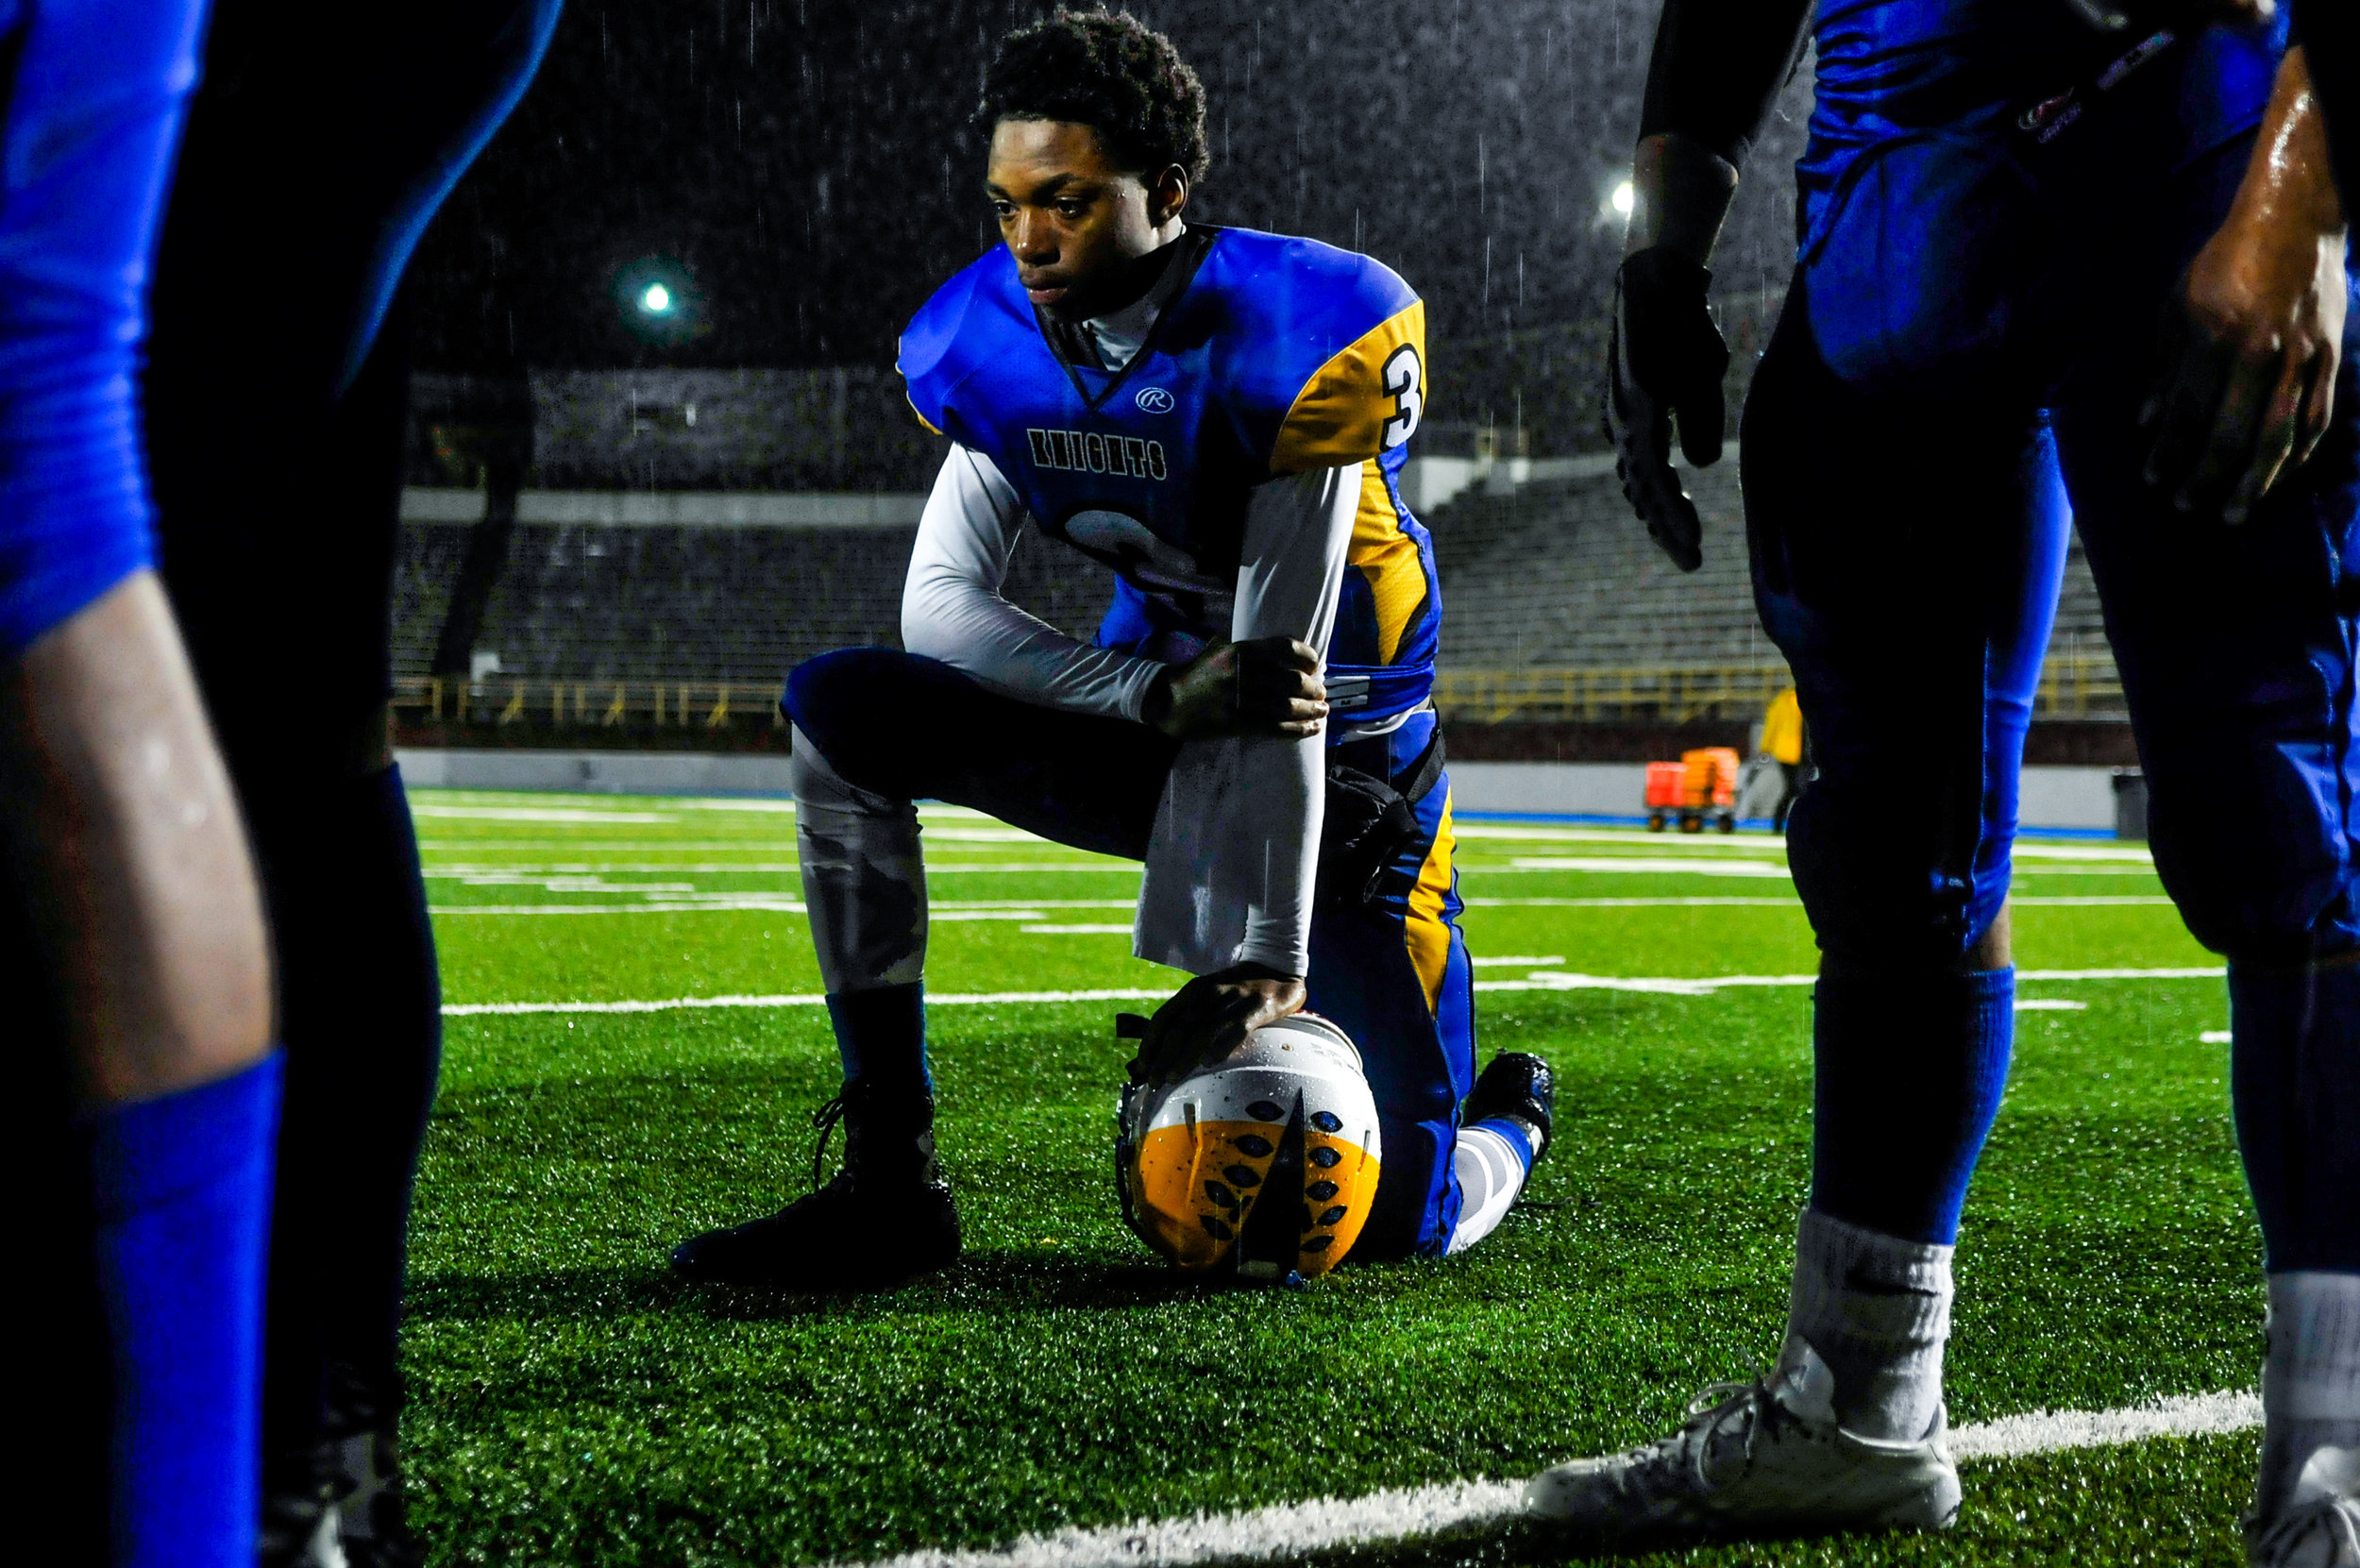 Flint Southwestern sophomore Zameer Wallace, No. 3, kneels while he listens to his coach after a tough loss in the final seconds of the game against Mount Pleasant High School on Friday, Sept. 30, 2016 at Kettering University's Atwood Stadium in Flint. Mt Pleasant beat Flint Southwestern 14-13.